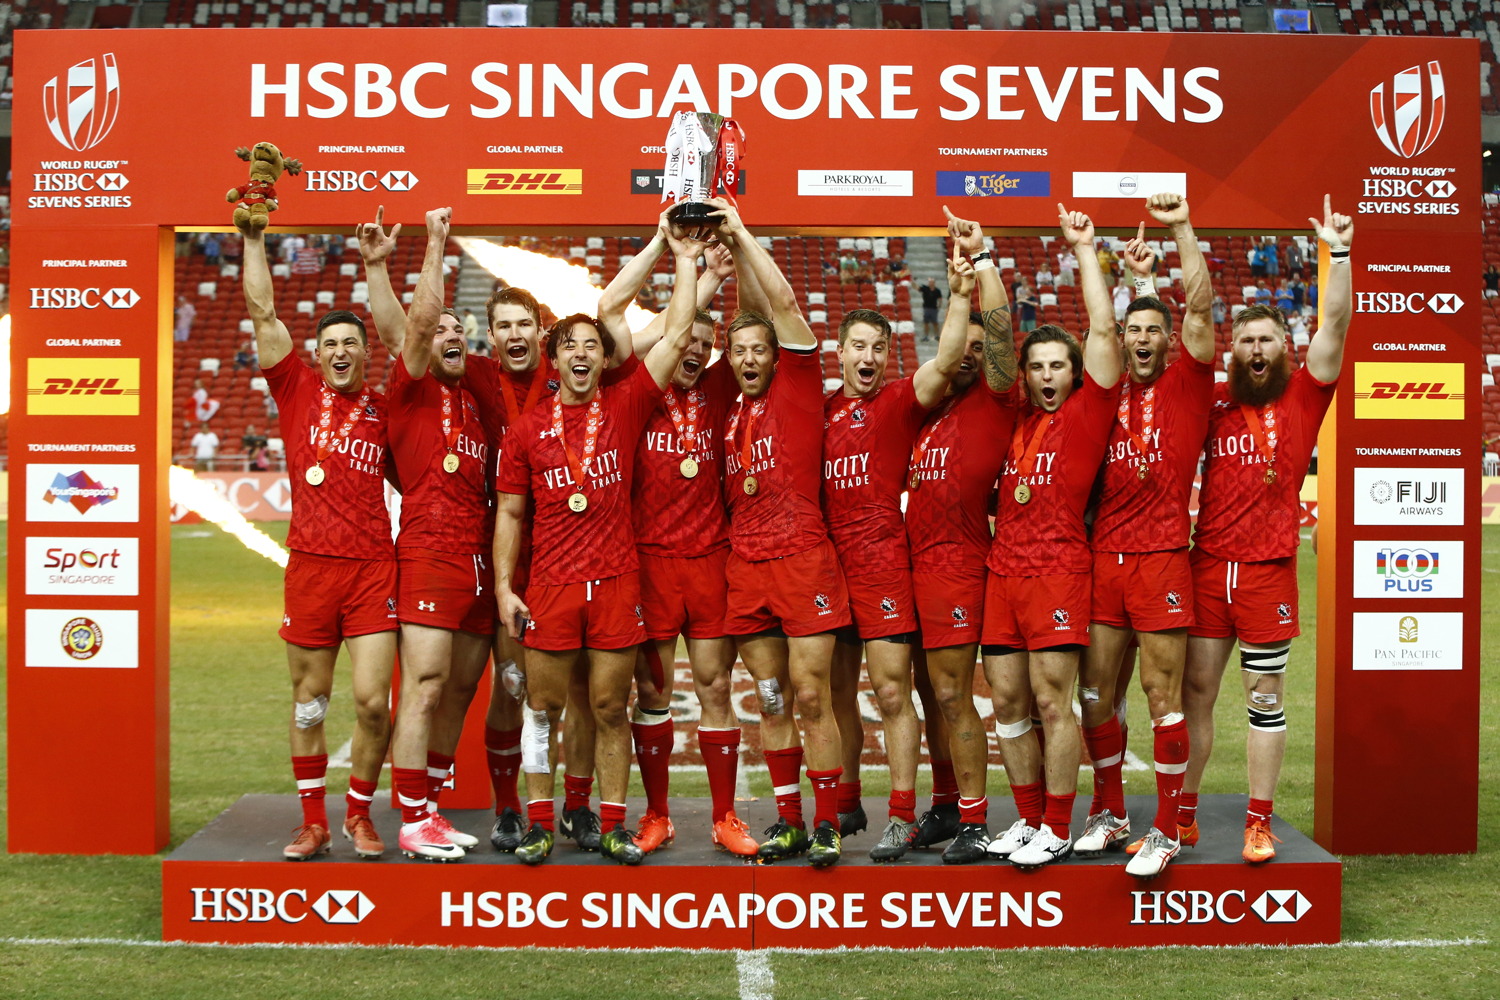 Rugby Union - Singapore Sevens Final - National Stadium, Singapore - 16/04/17 - Canada players celebrate their victory. REUTERS/Yong Teck Lim